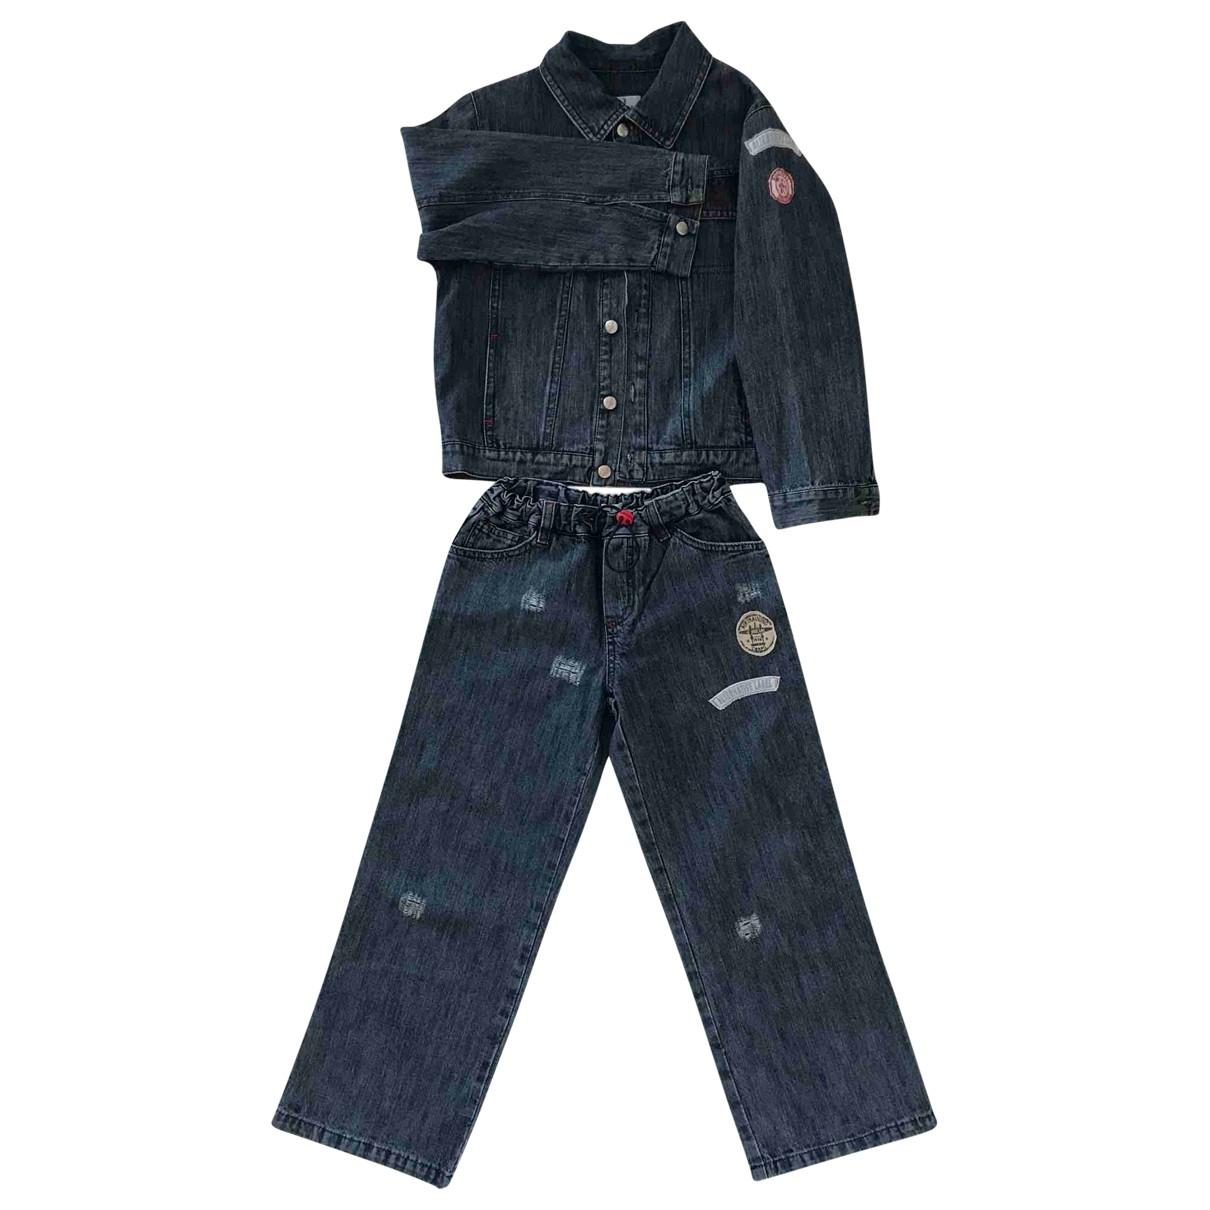 Trussardi \N Blue Denim - Jeans Outfits for Kids 6 years - up to 114cm FR